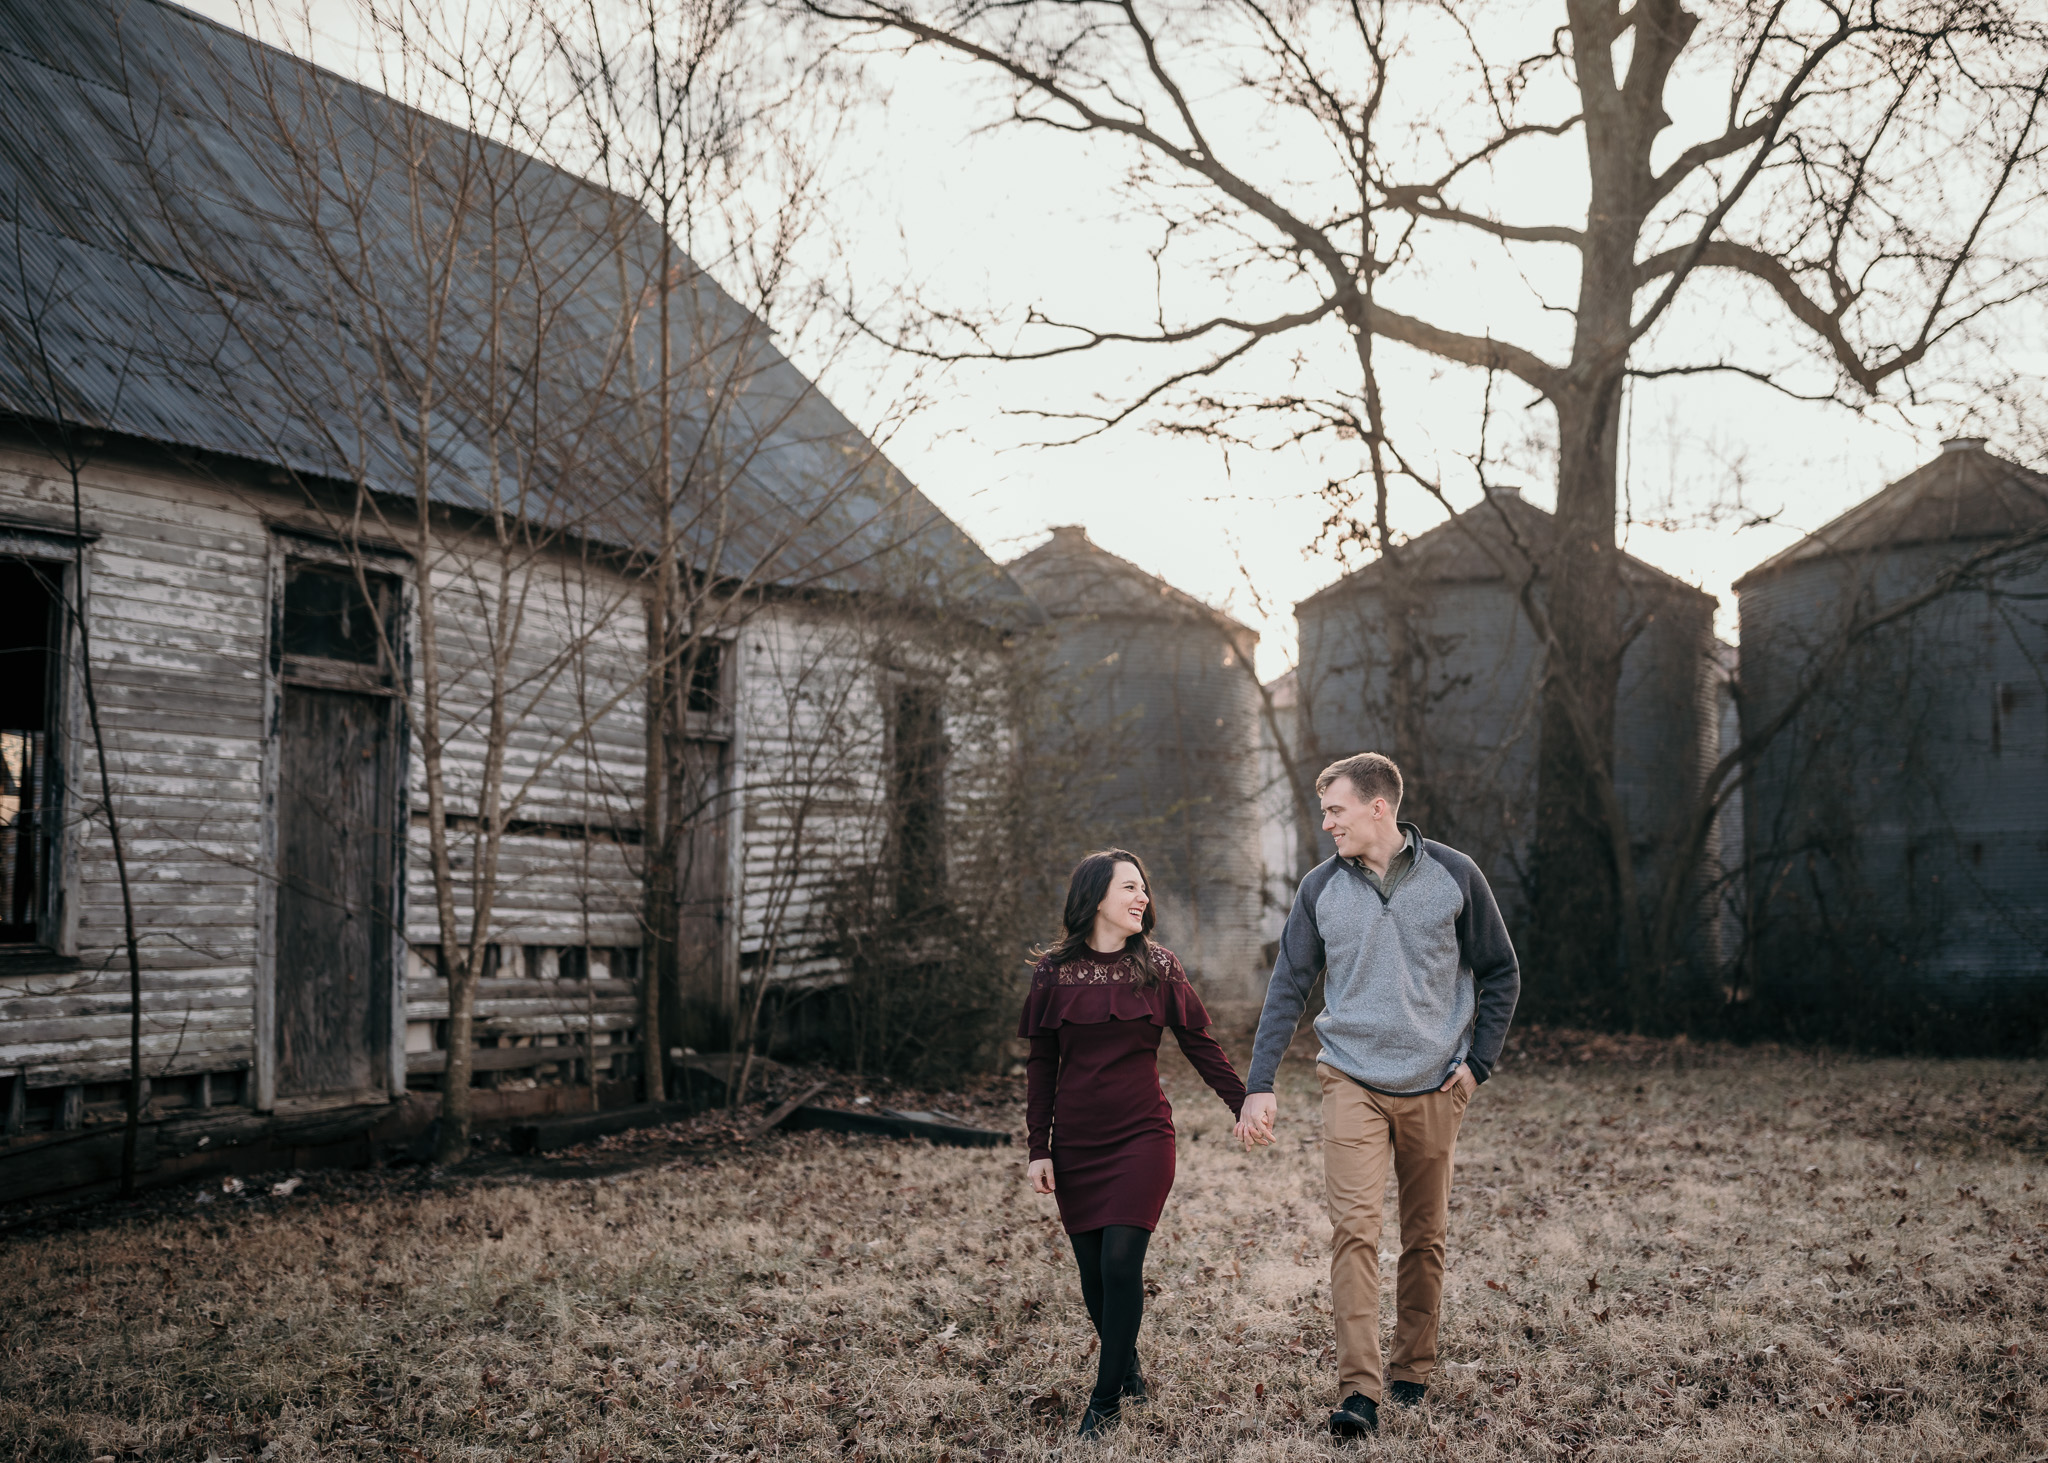 photographer in Clarksville, tn specializing in lifestyle engagement and family photography in the clarksville, tn and fort campbell, ky area